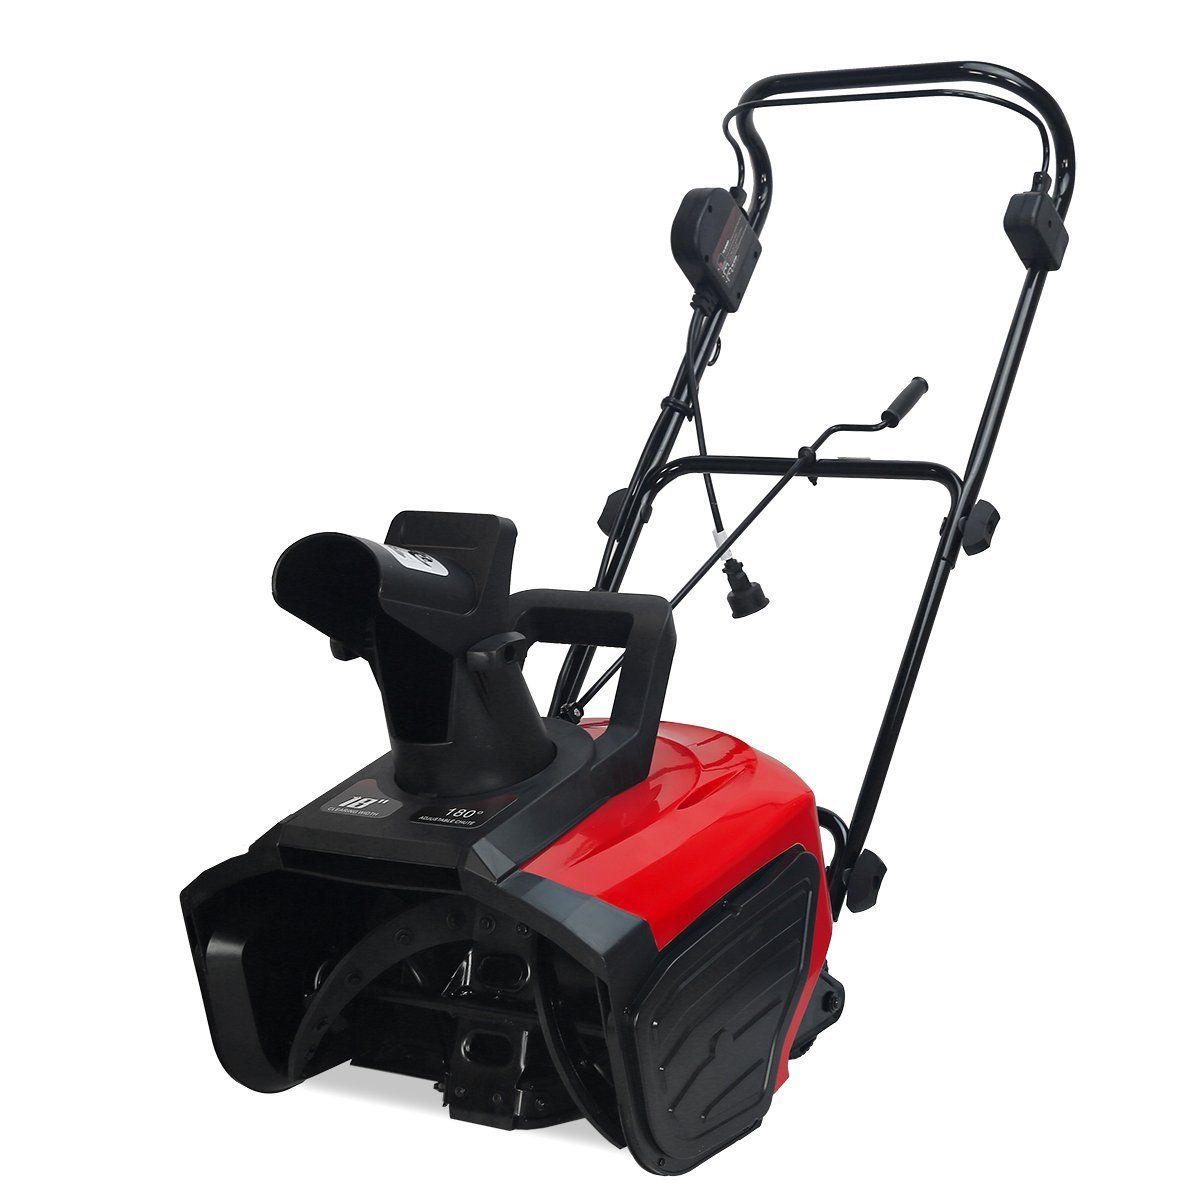 Wonderful Electric Snow Thrower A Machine For Snow Removal